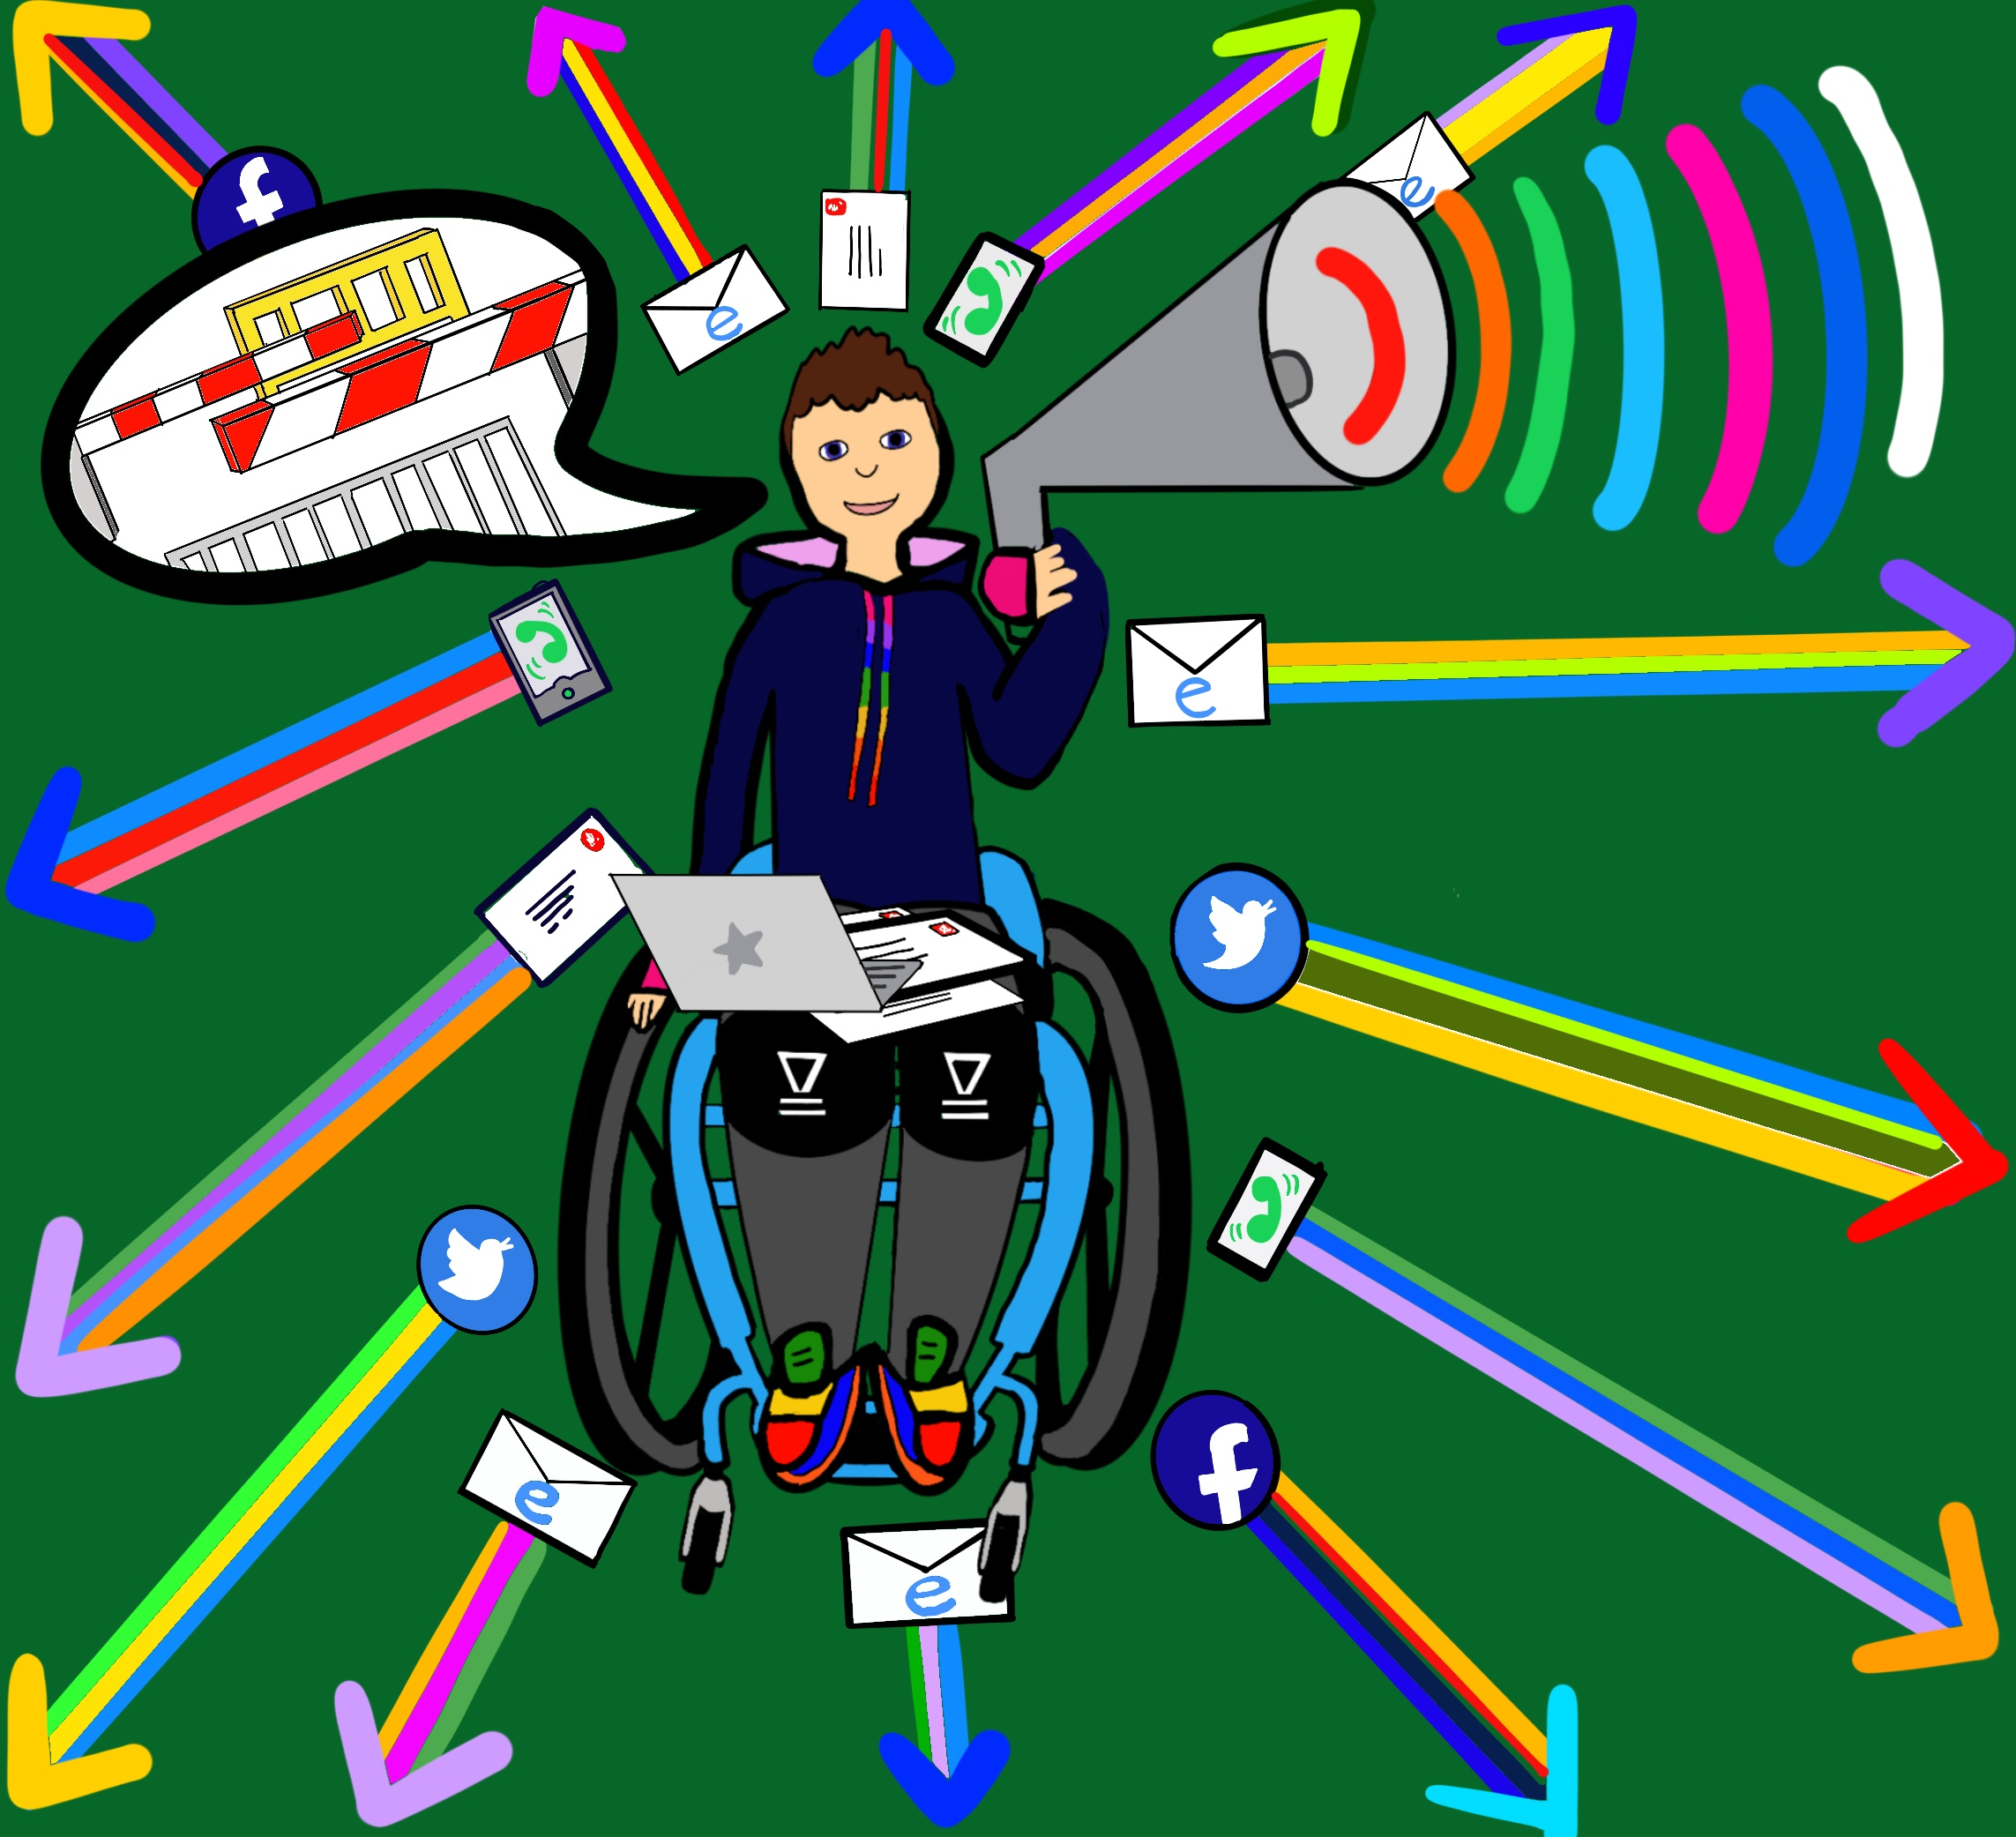 A digital drawing of Touretteshero with her computer and a stack of letters on her lap. She is holding a megaphone and is surrounded by coloured arrows shooting away from her which have various communication symbols such as WhatsApp, Twitter, email and Facebook logos attached to them.